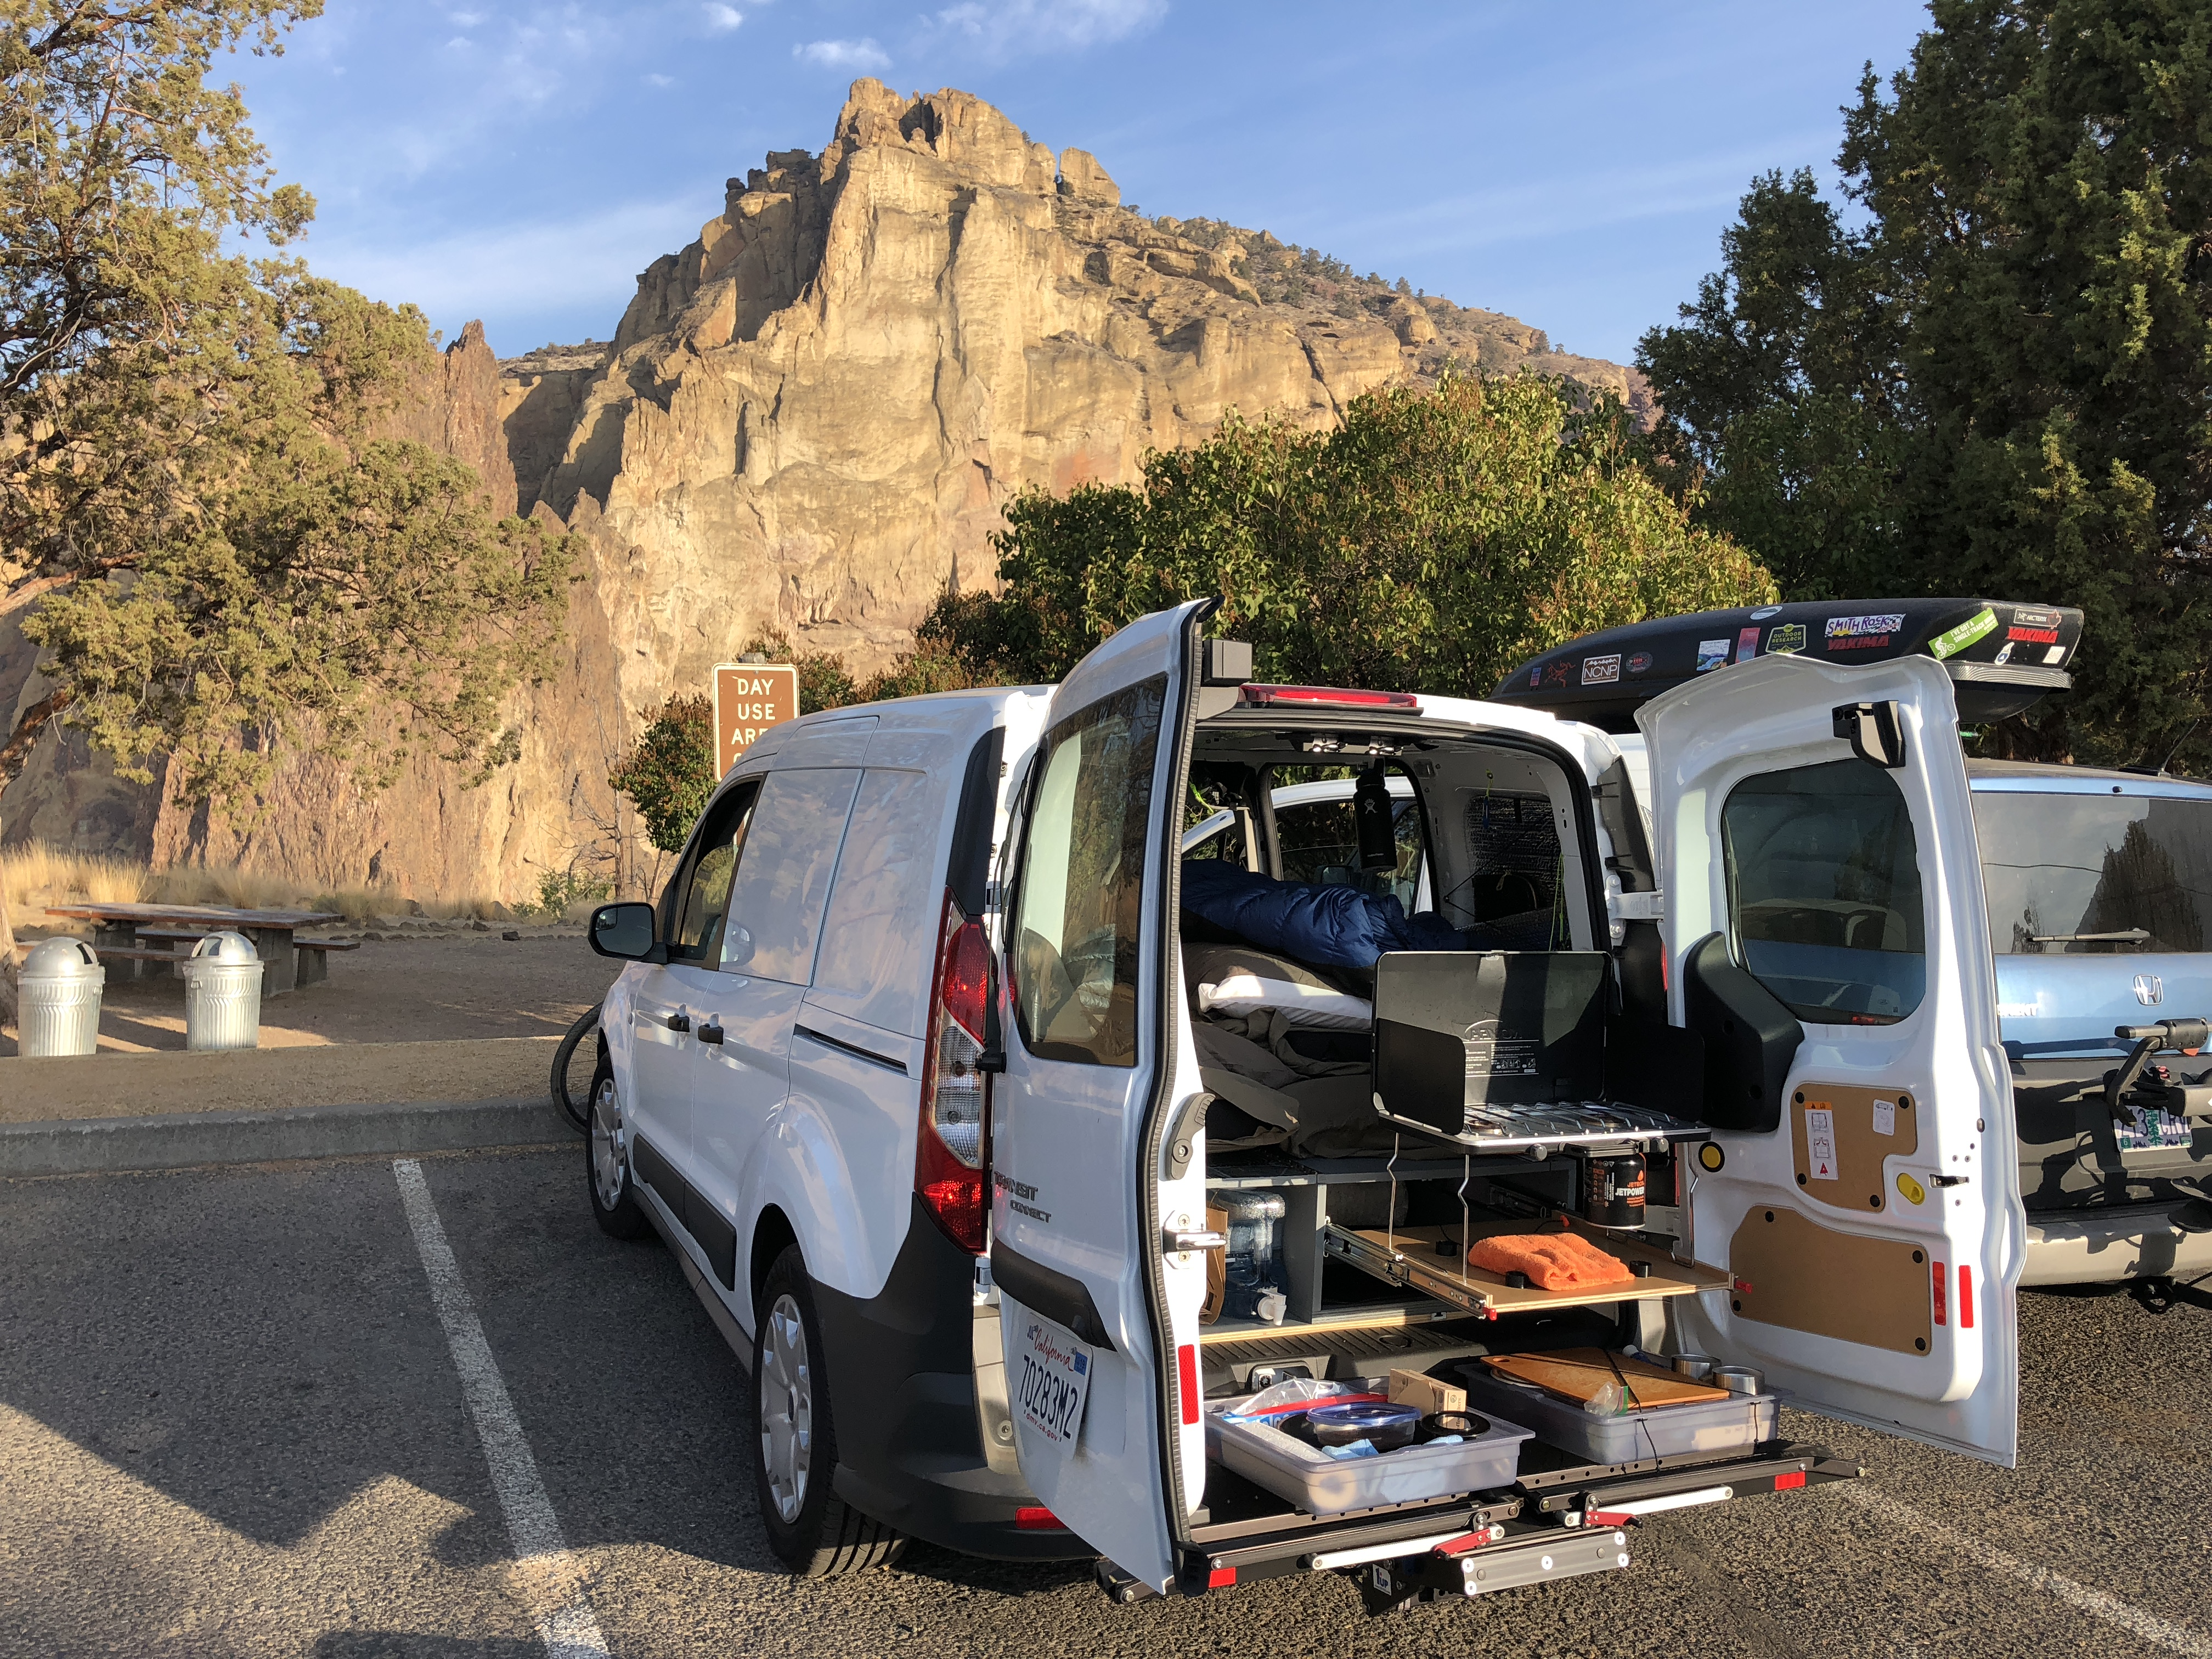 Photo no longer representative. Modified pictured setup for more storage under sleeping platform and easier, more-open access. No longer includes slider platform for stove but does include mobile kitchen, which is easy to setup outside the van or on a campground picnic table. See next images.. Ford Transit Connect SWB 2018